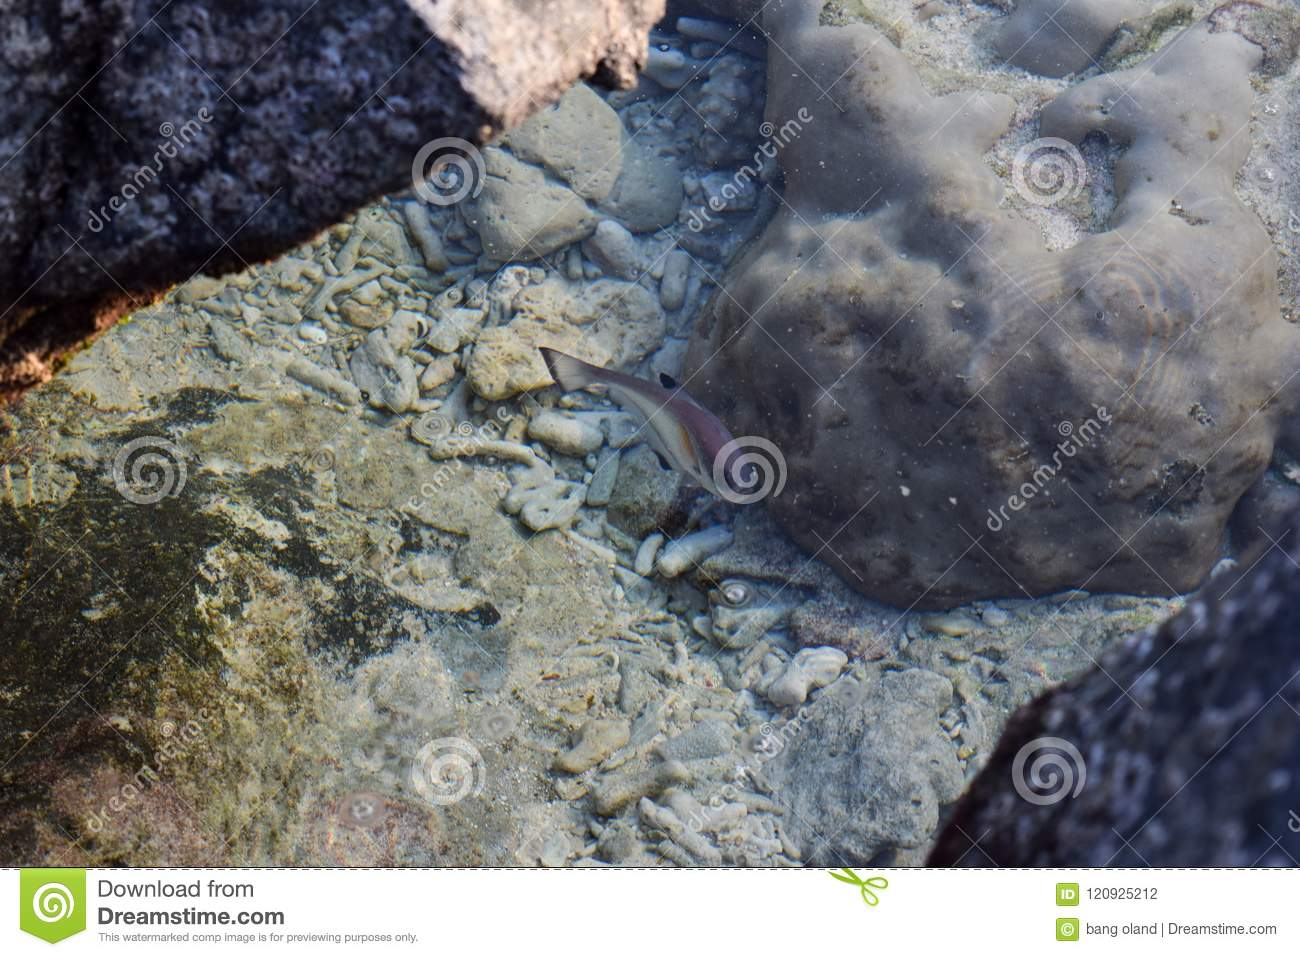 Tropical fish on the shore